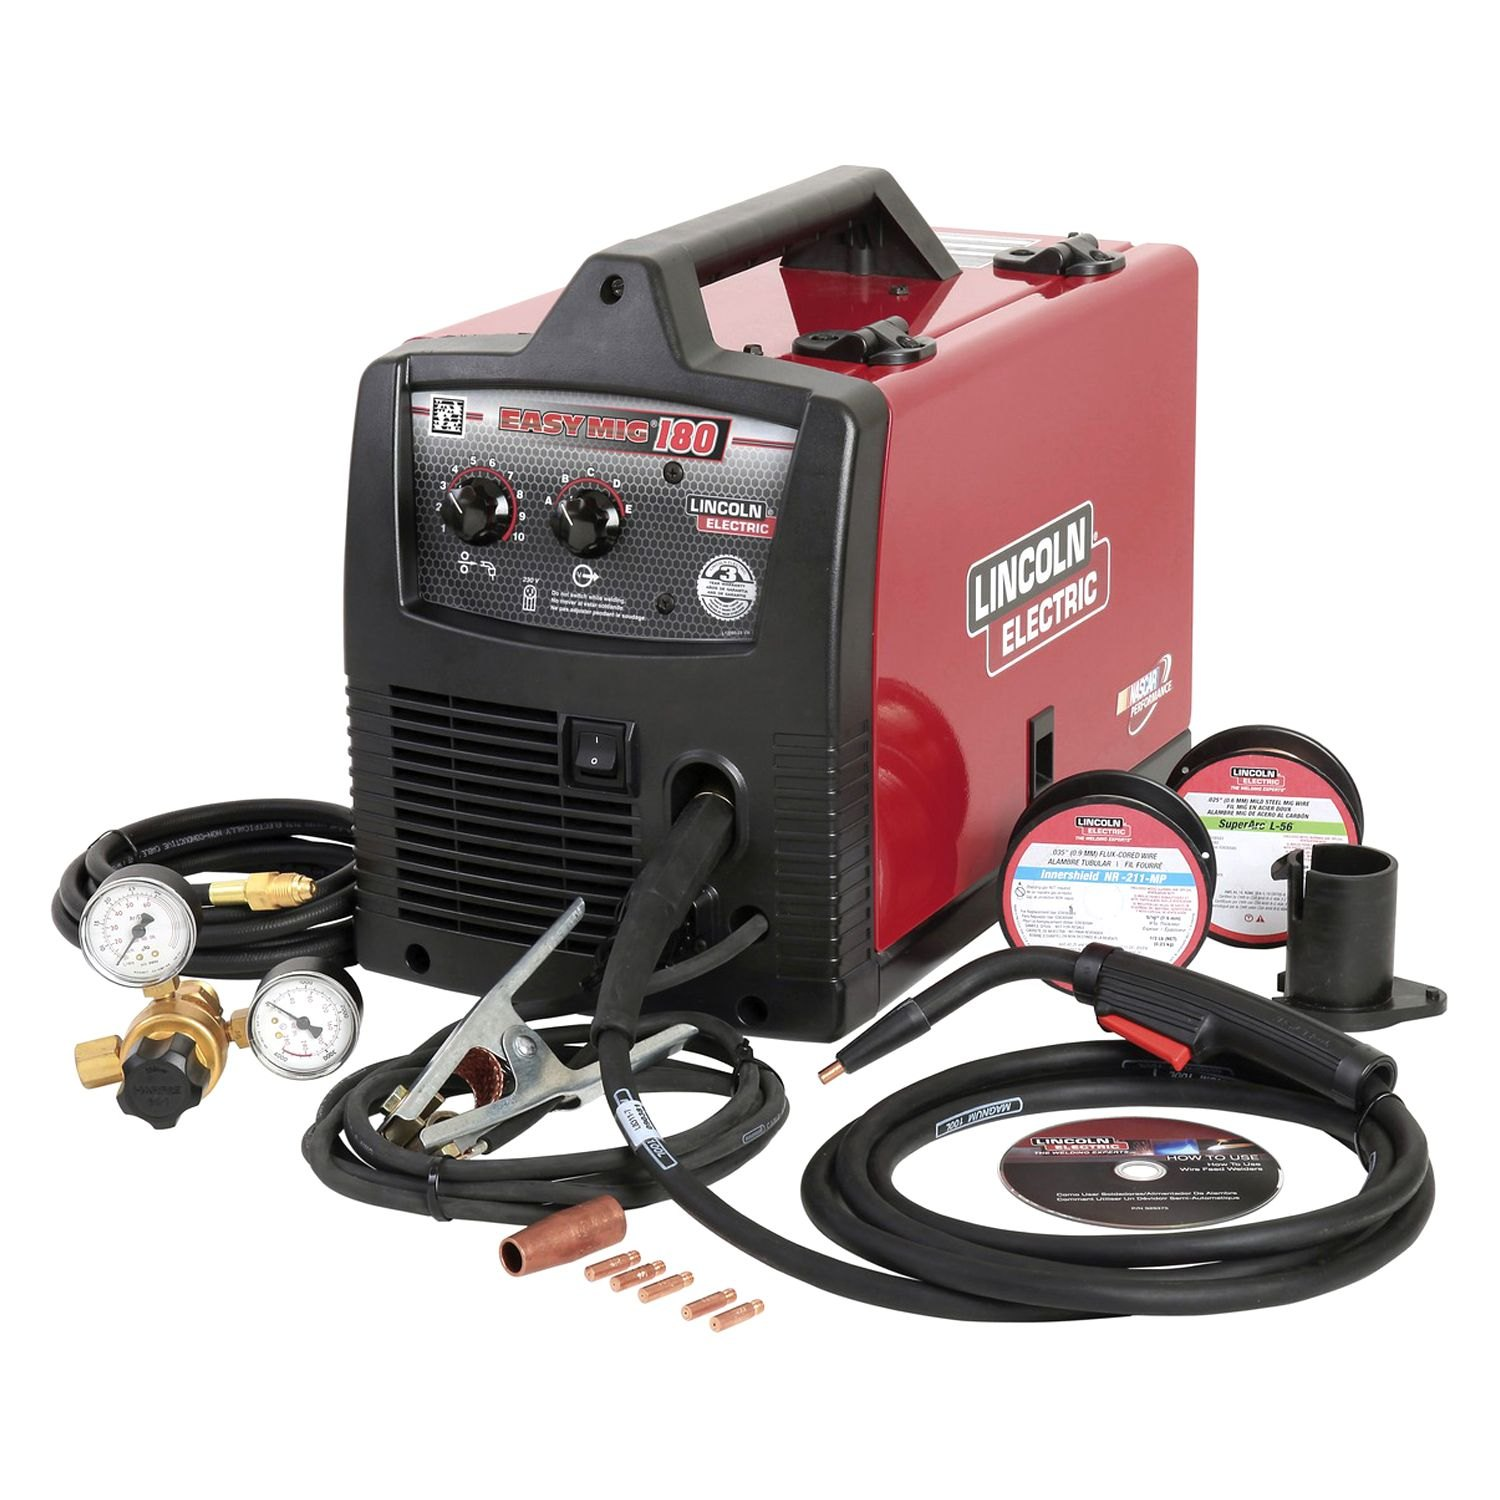 Lincoln Electric 174 Easy Mig 180 Welder